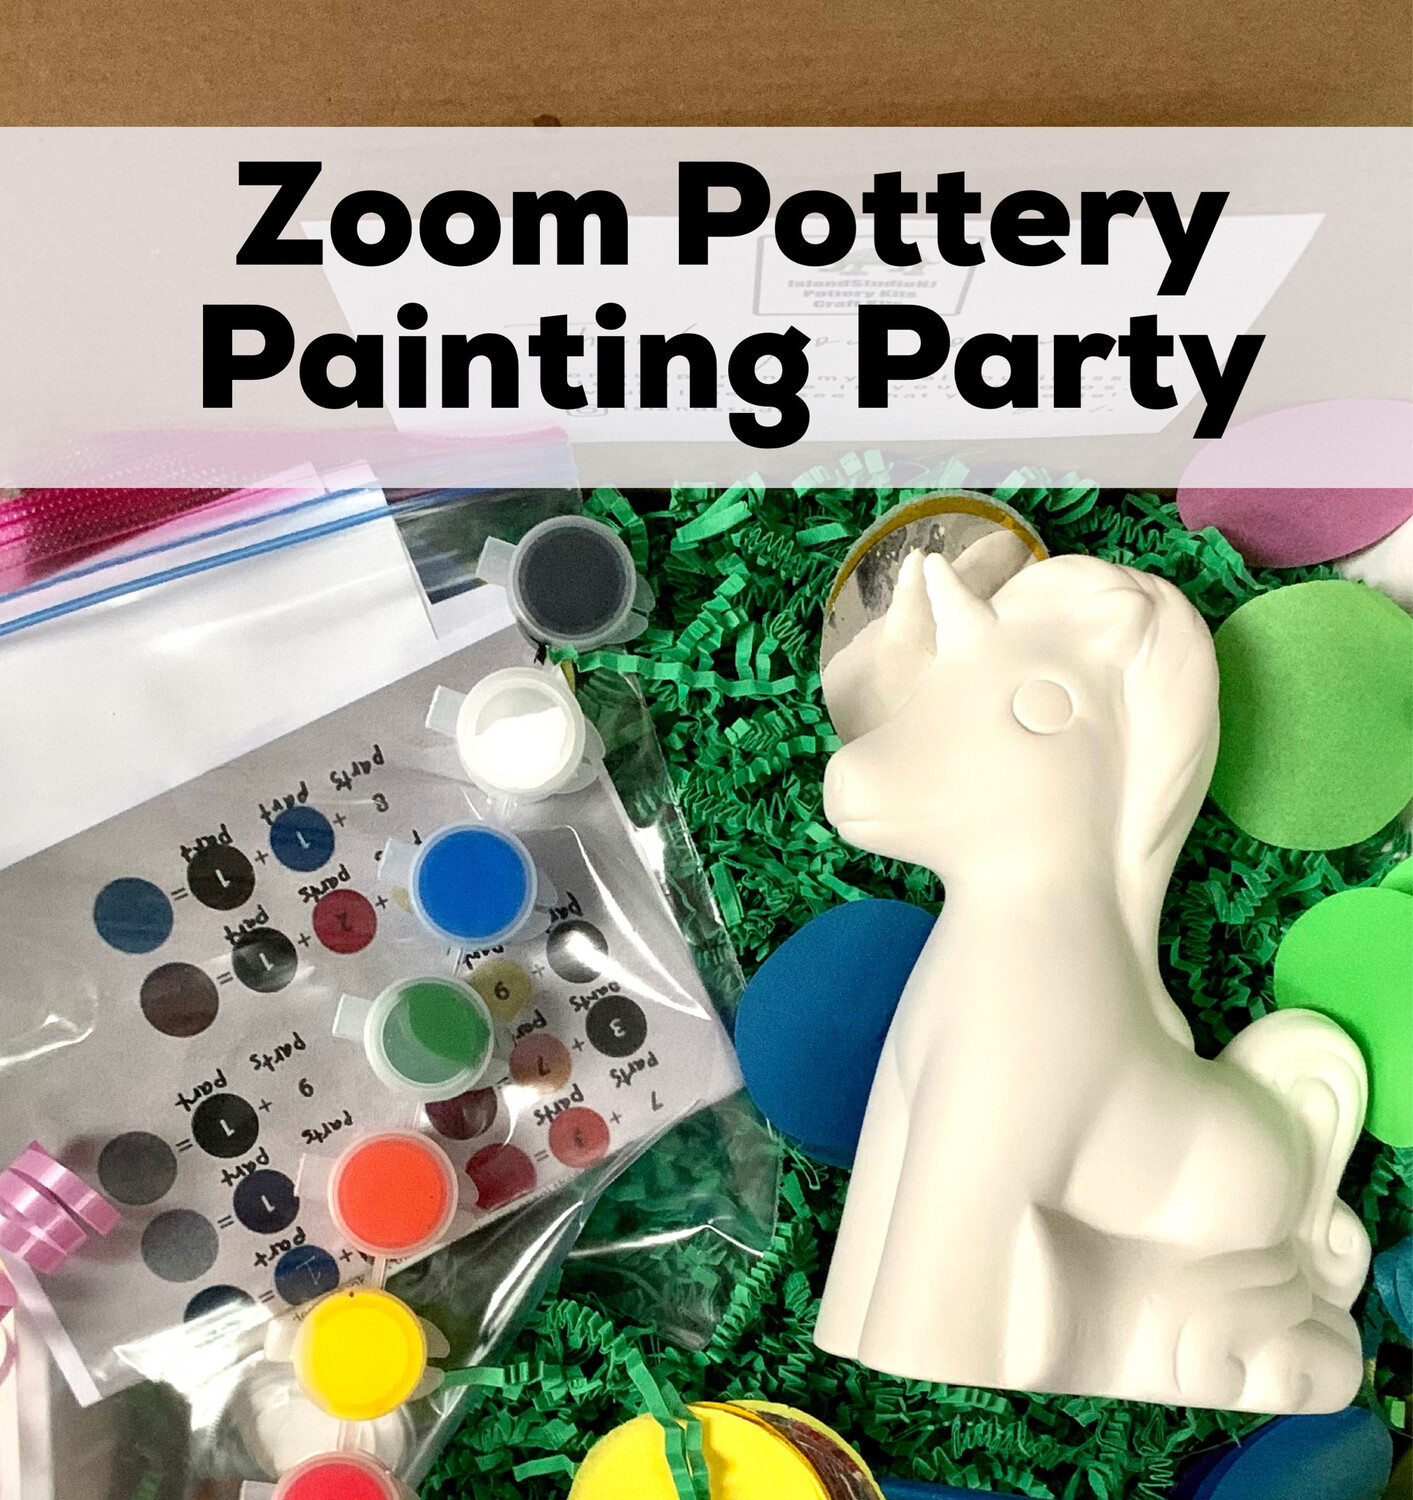 Zoom Pottery Painting Party May 25, 2021 from 3-4:30pm - Free With Pottery Purchase